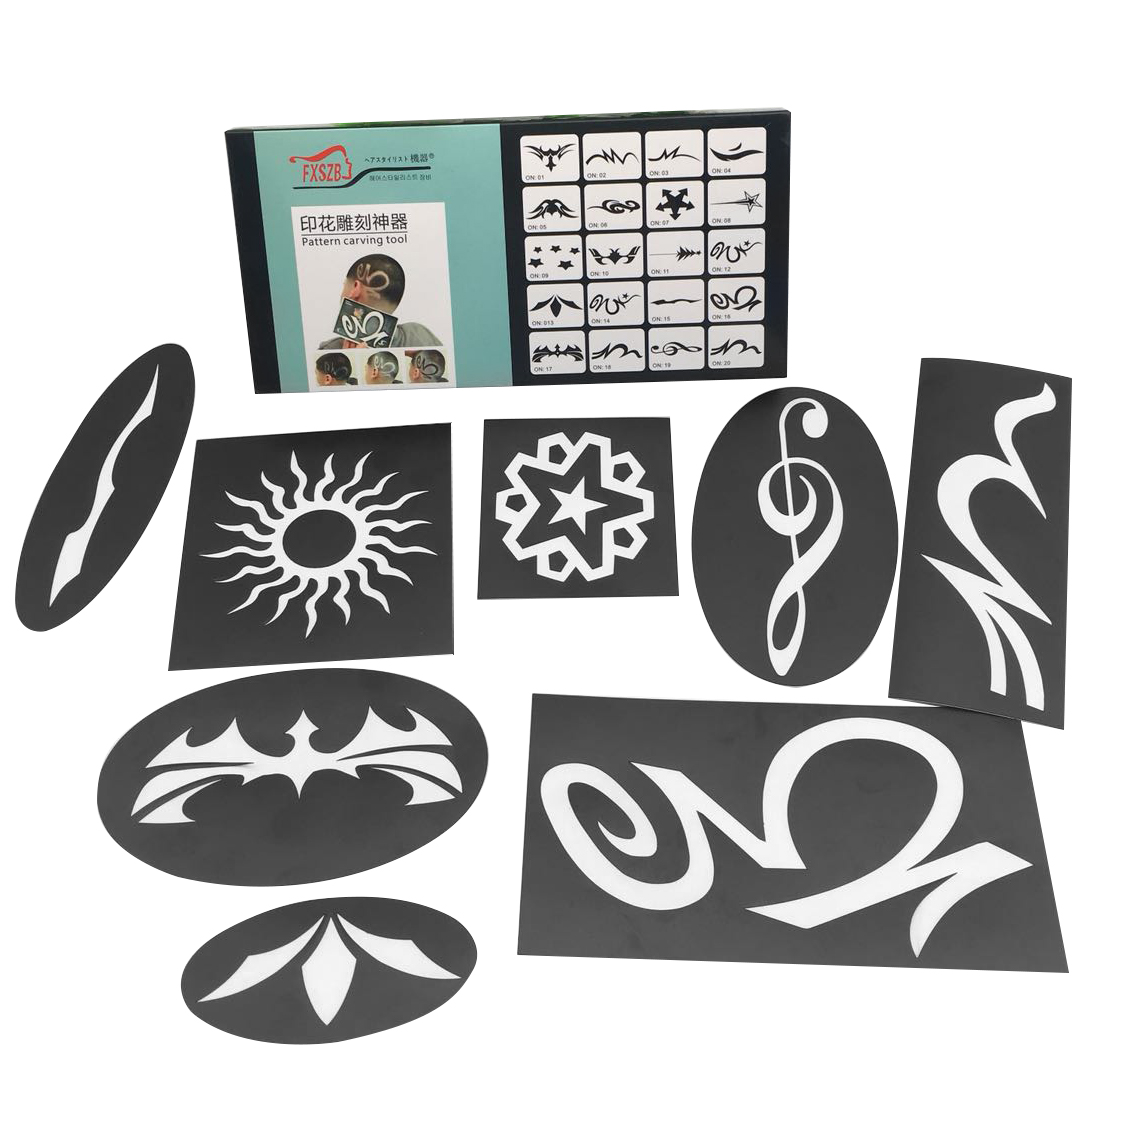 20pcs/set Hair Tattooing Template Engraving Hair Trimmer Carved Coloring Pattern Stencil Dye Coating Board Salon DIY Hairstyling